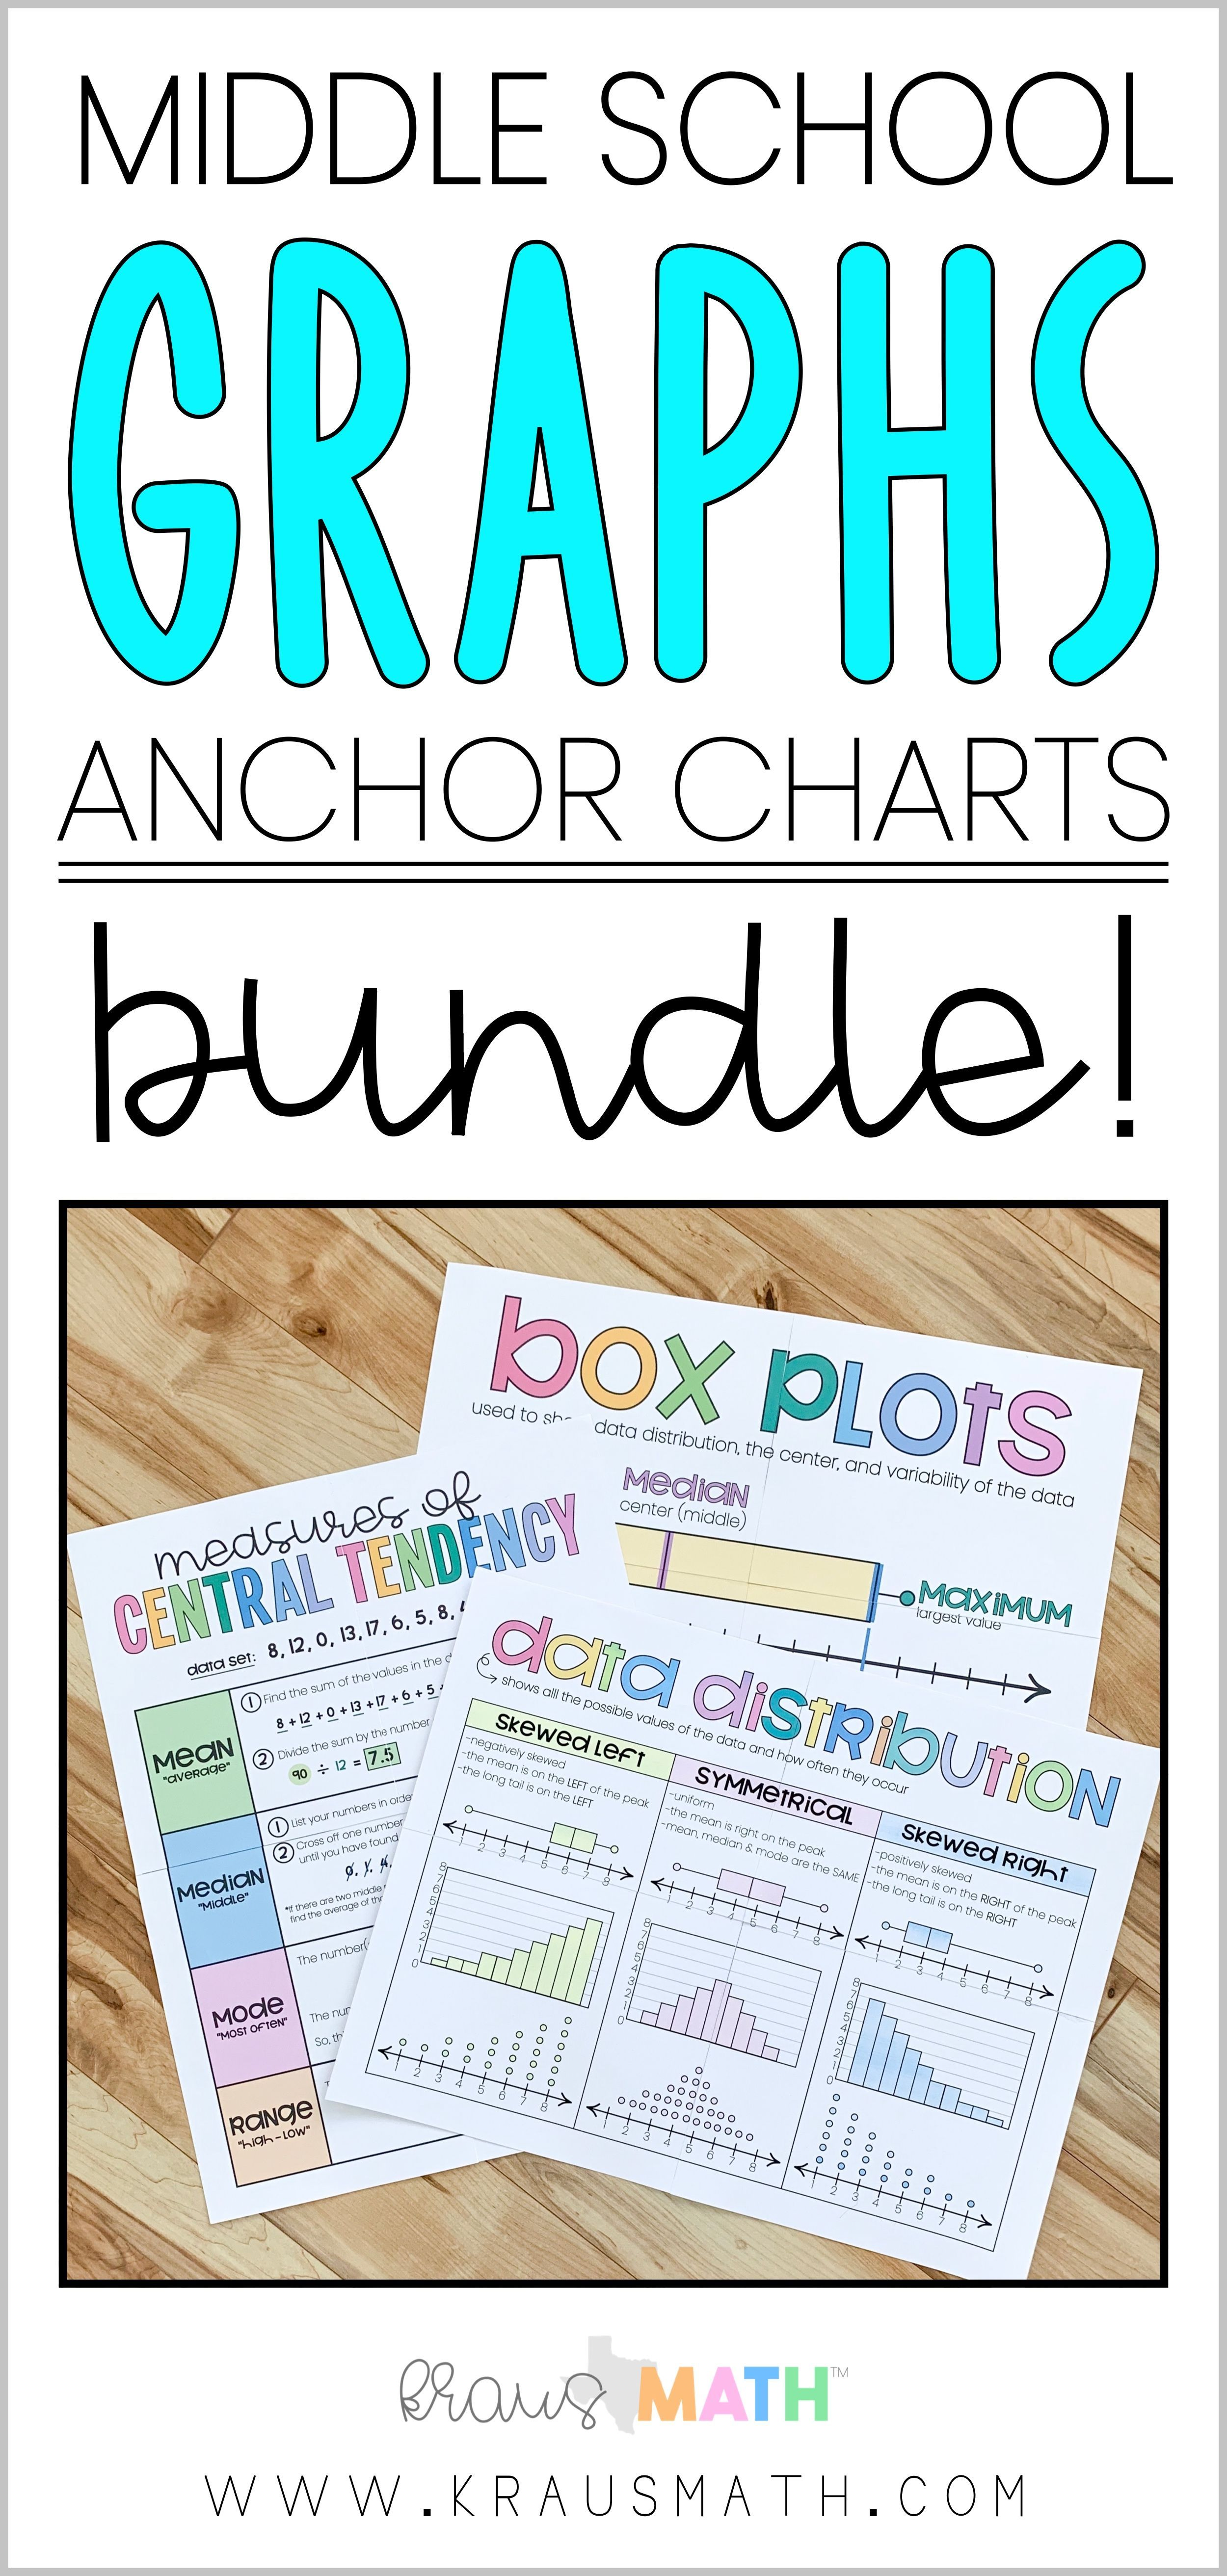 small resolution of 6th Grade Math Posters BUNDLE! POSTERS INCLUDED:Measures of Central  TendencyData DistributionBox Plo…   Math poster